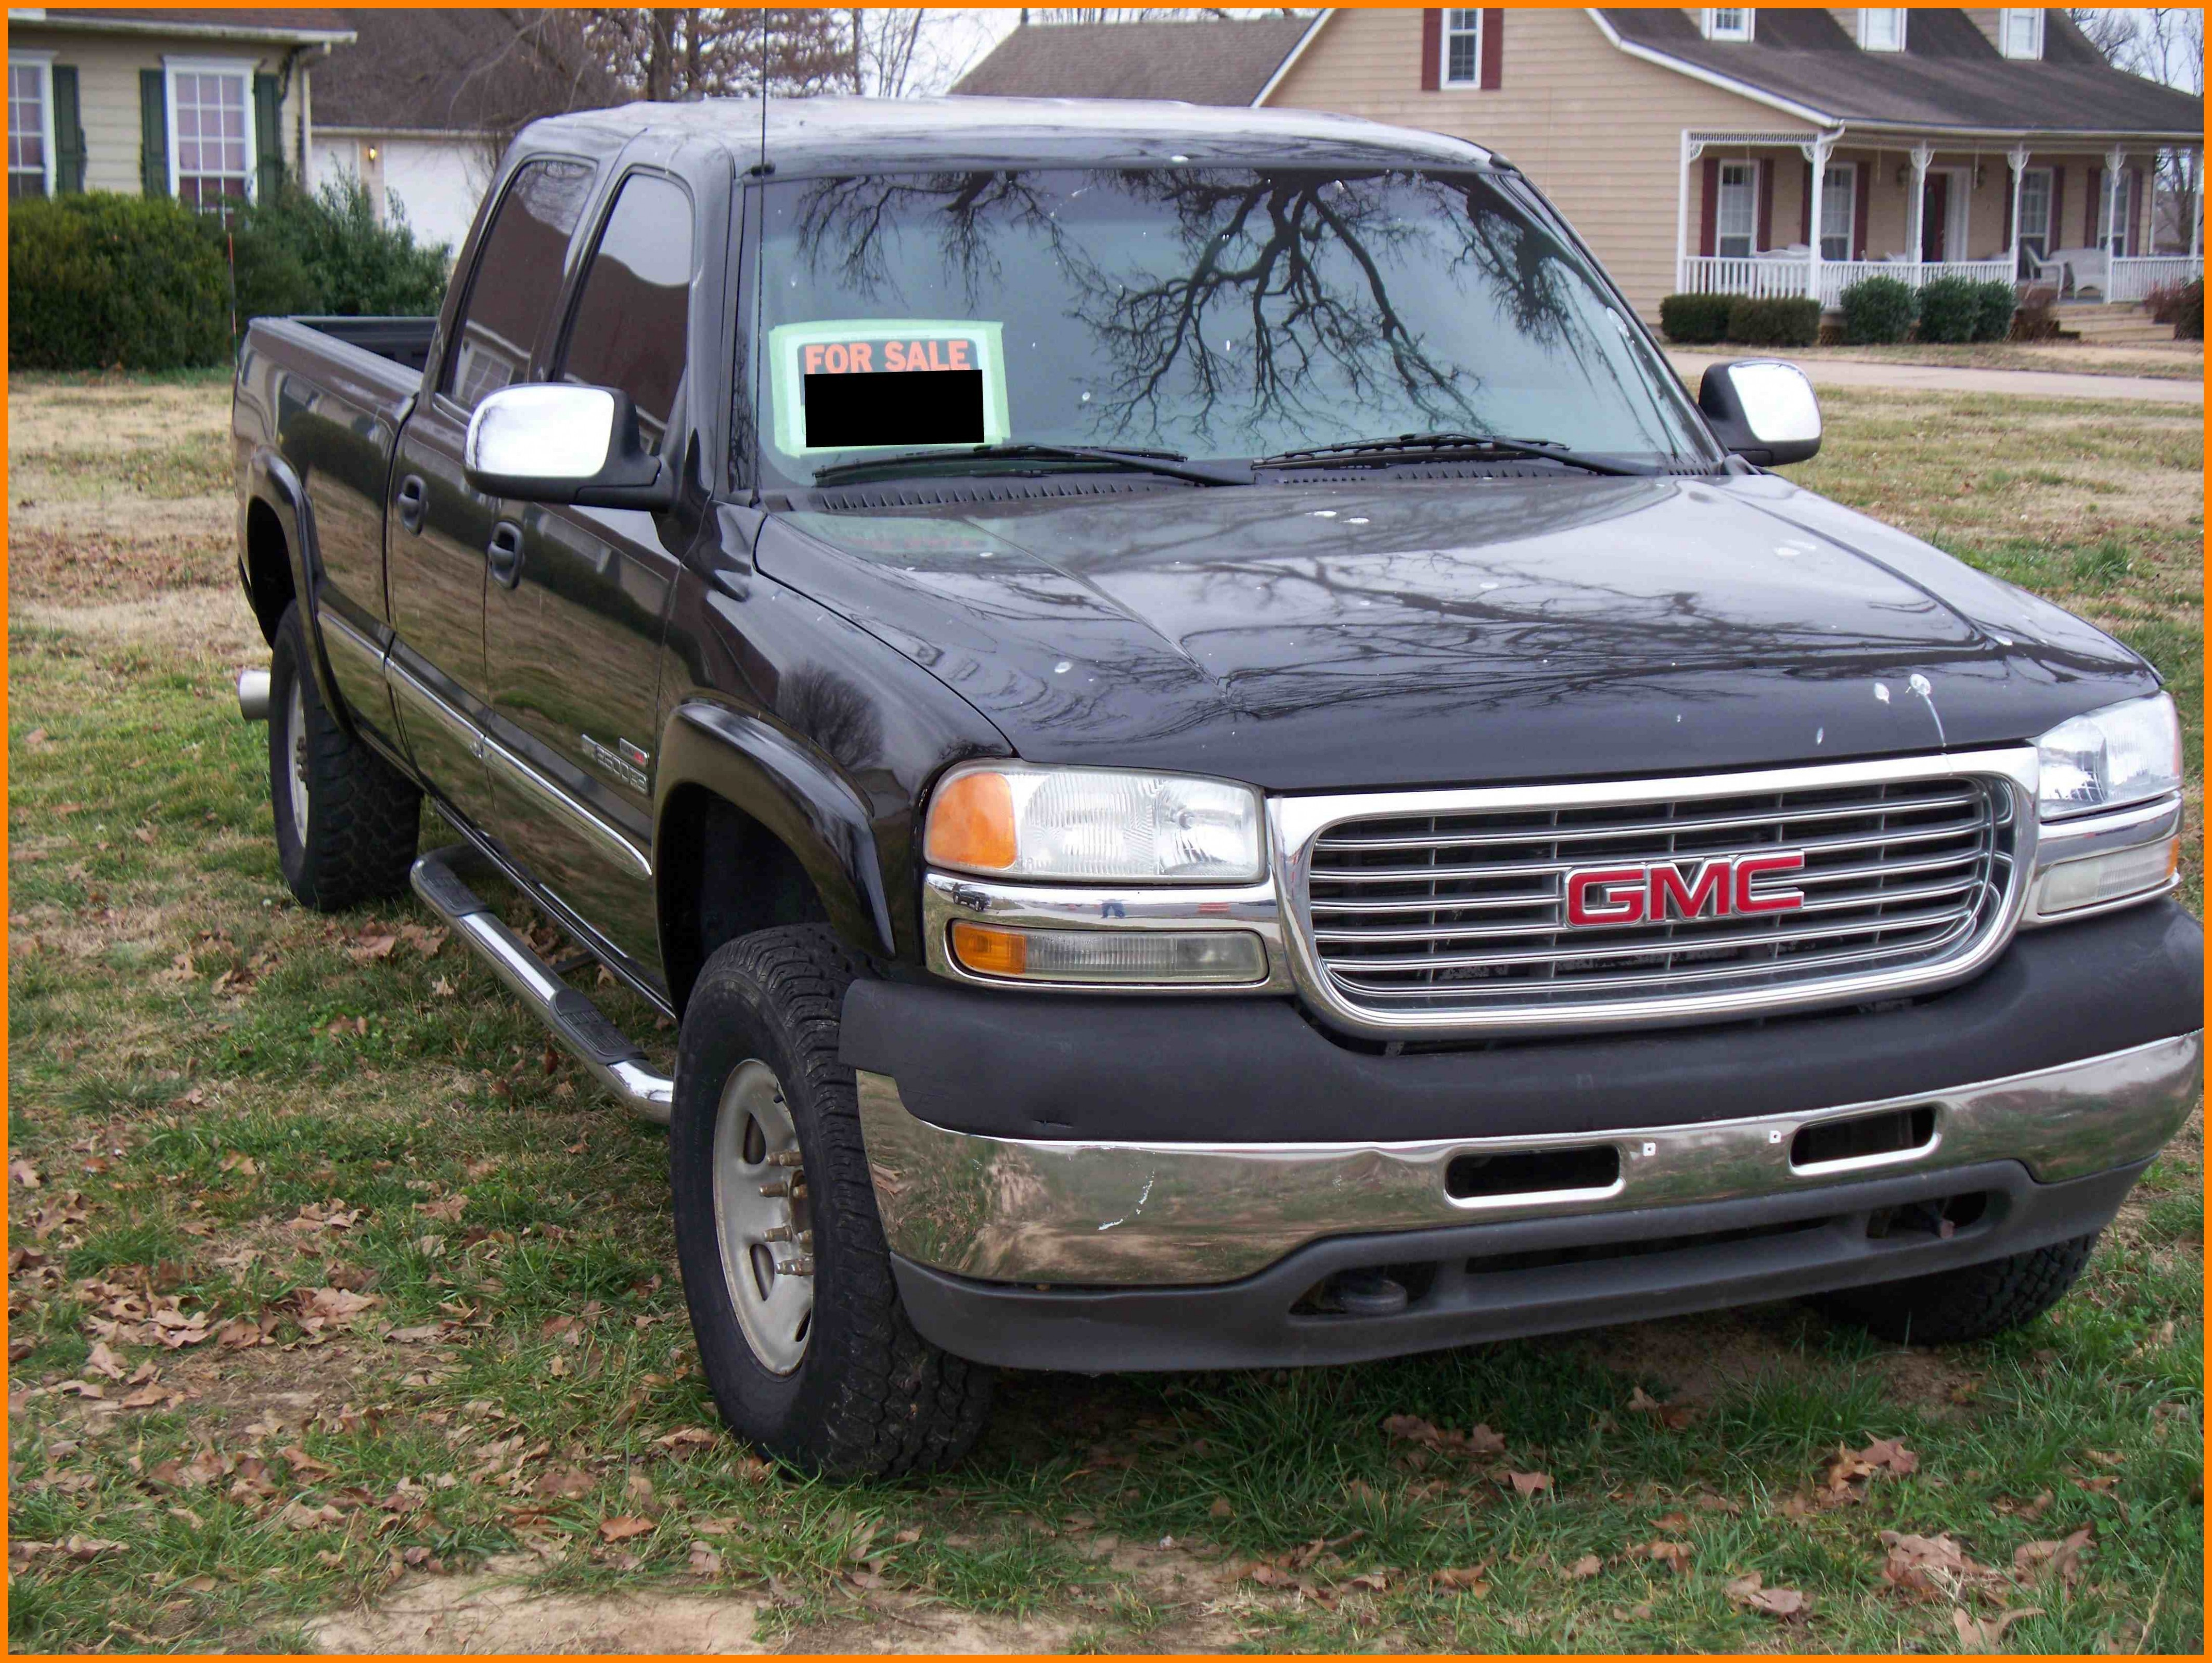 Inspirational Cars or Trucks for Sale Near Me